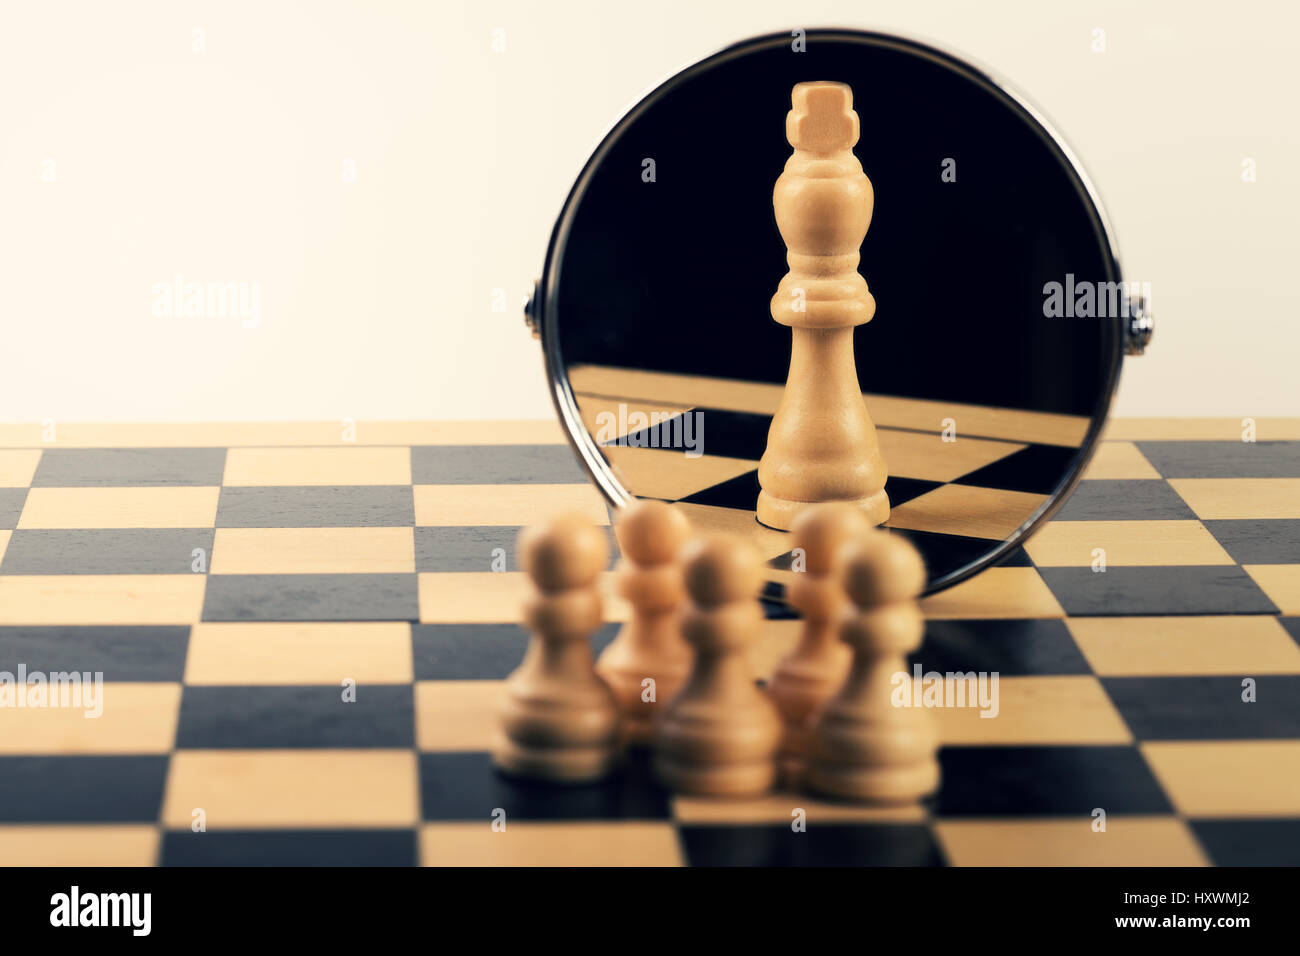 concept of business leadership teamwork power and belief - Stock Image